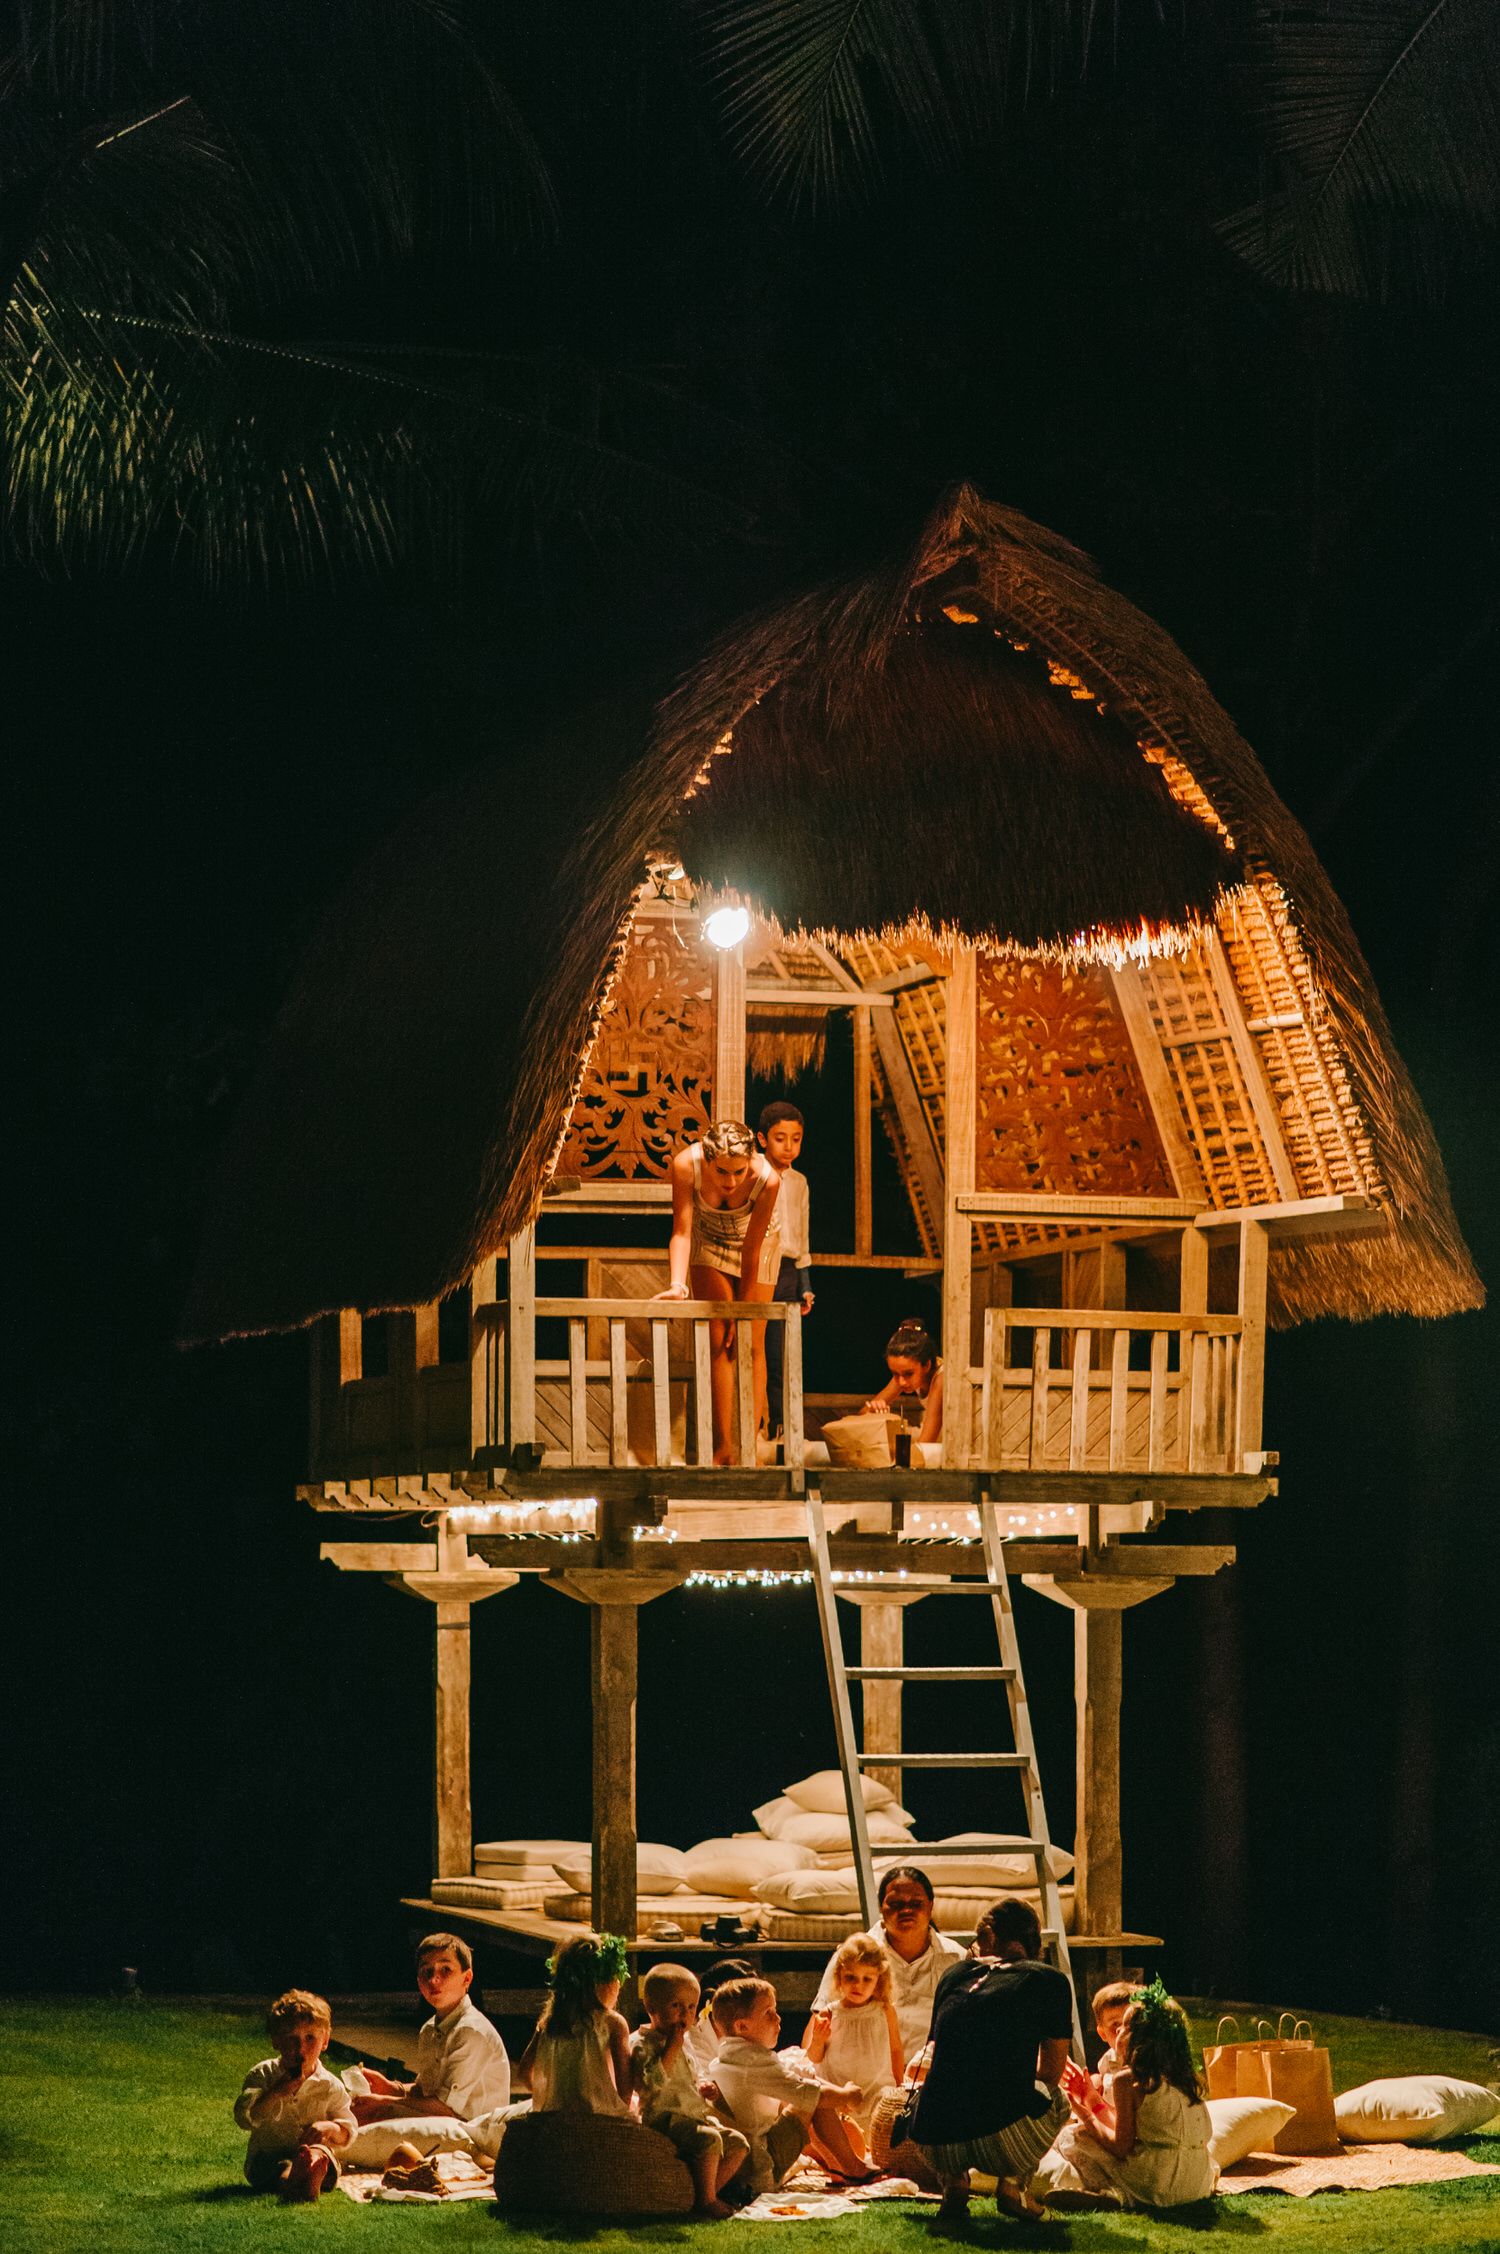 bali-wedding-destination-wedding-in-bali-bali-photographer-the-sanctuary-villa-profesional-bali-wedding-photographer-diktatphotography-clement-armine-wedding-79